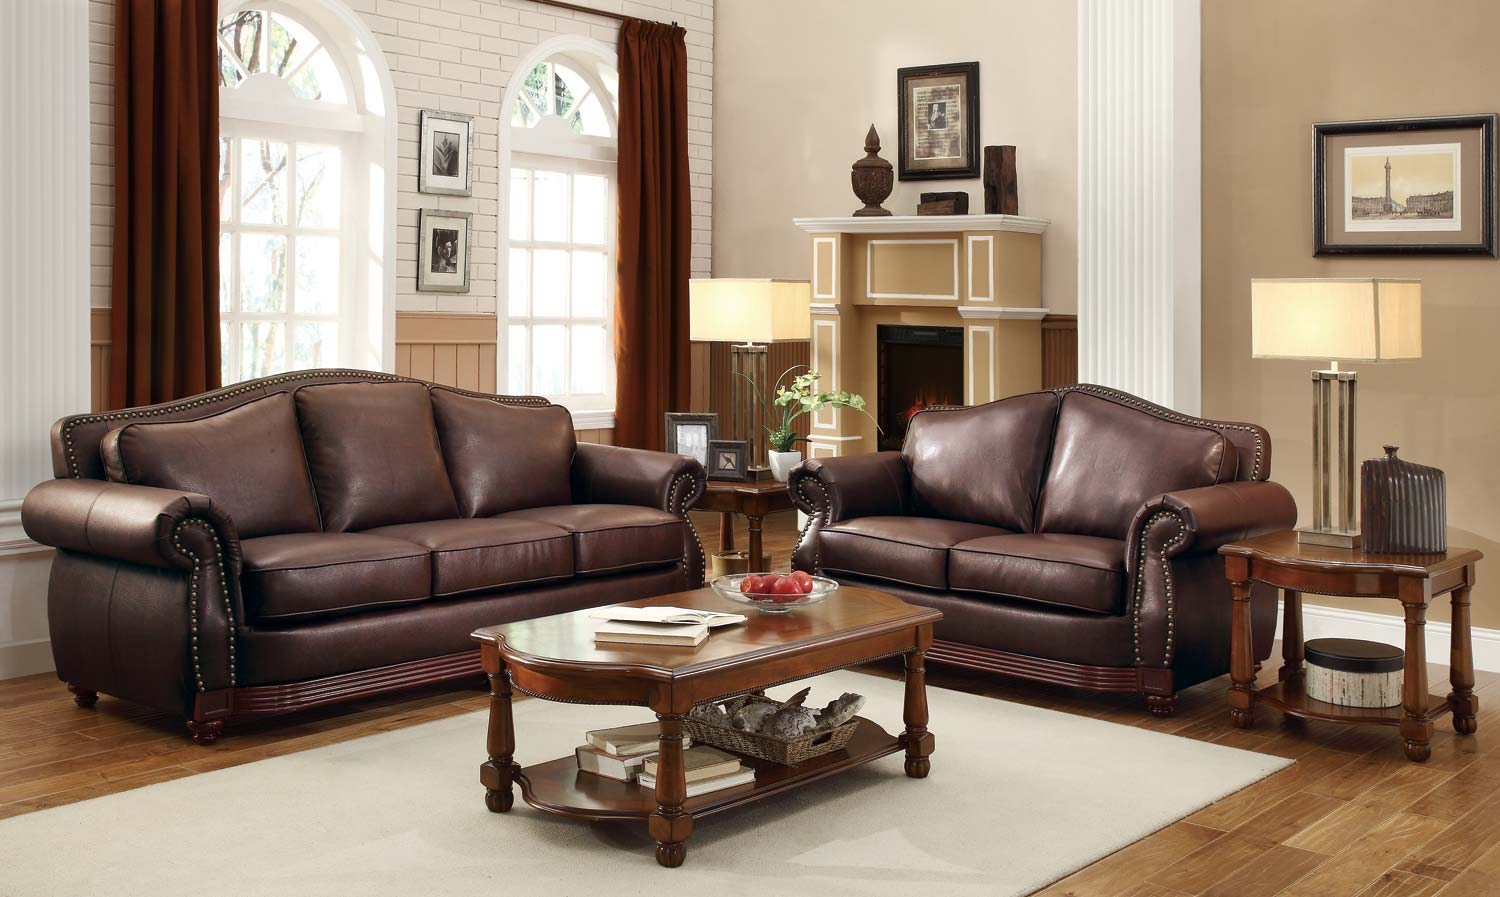 Superior Homelegance Midwood Bonded Leather Sofa Collection   Dark Brown